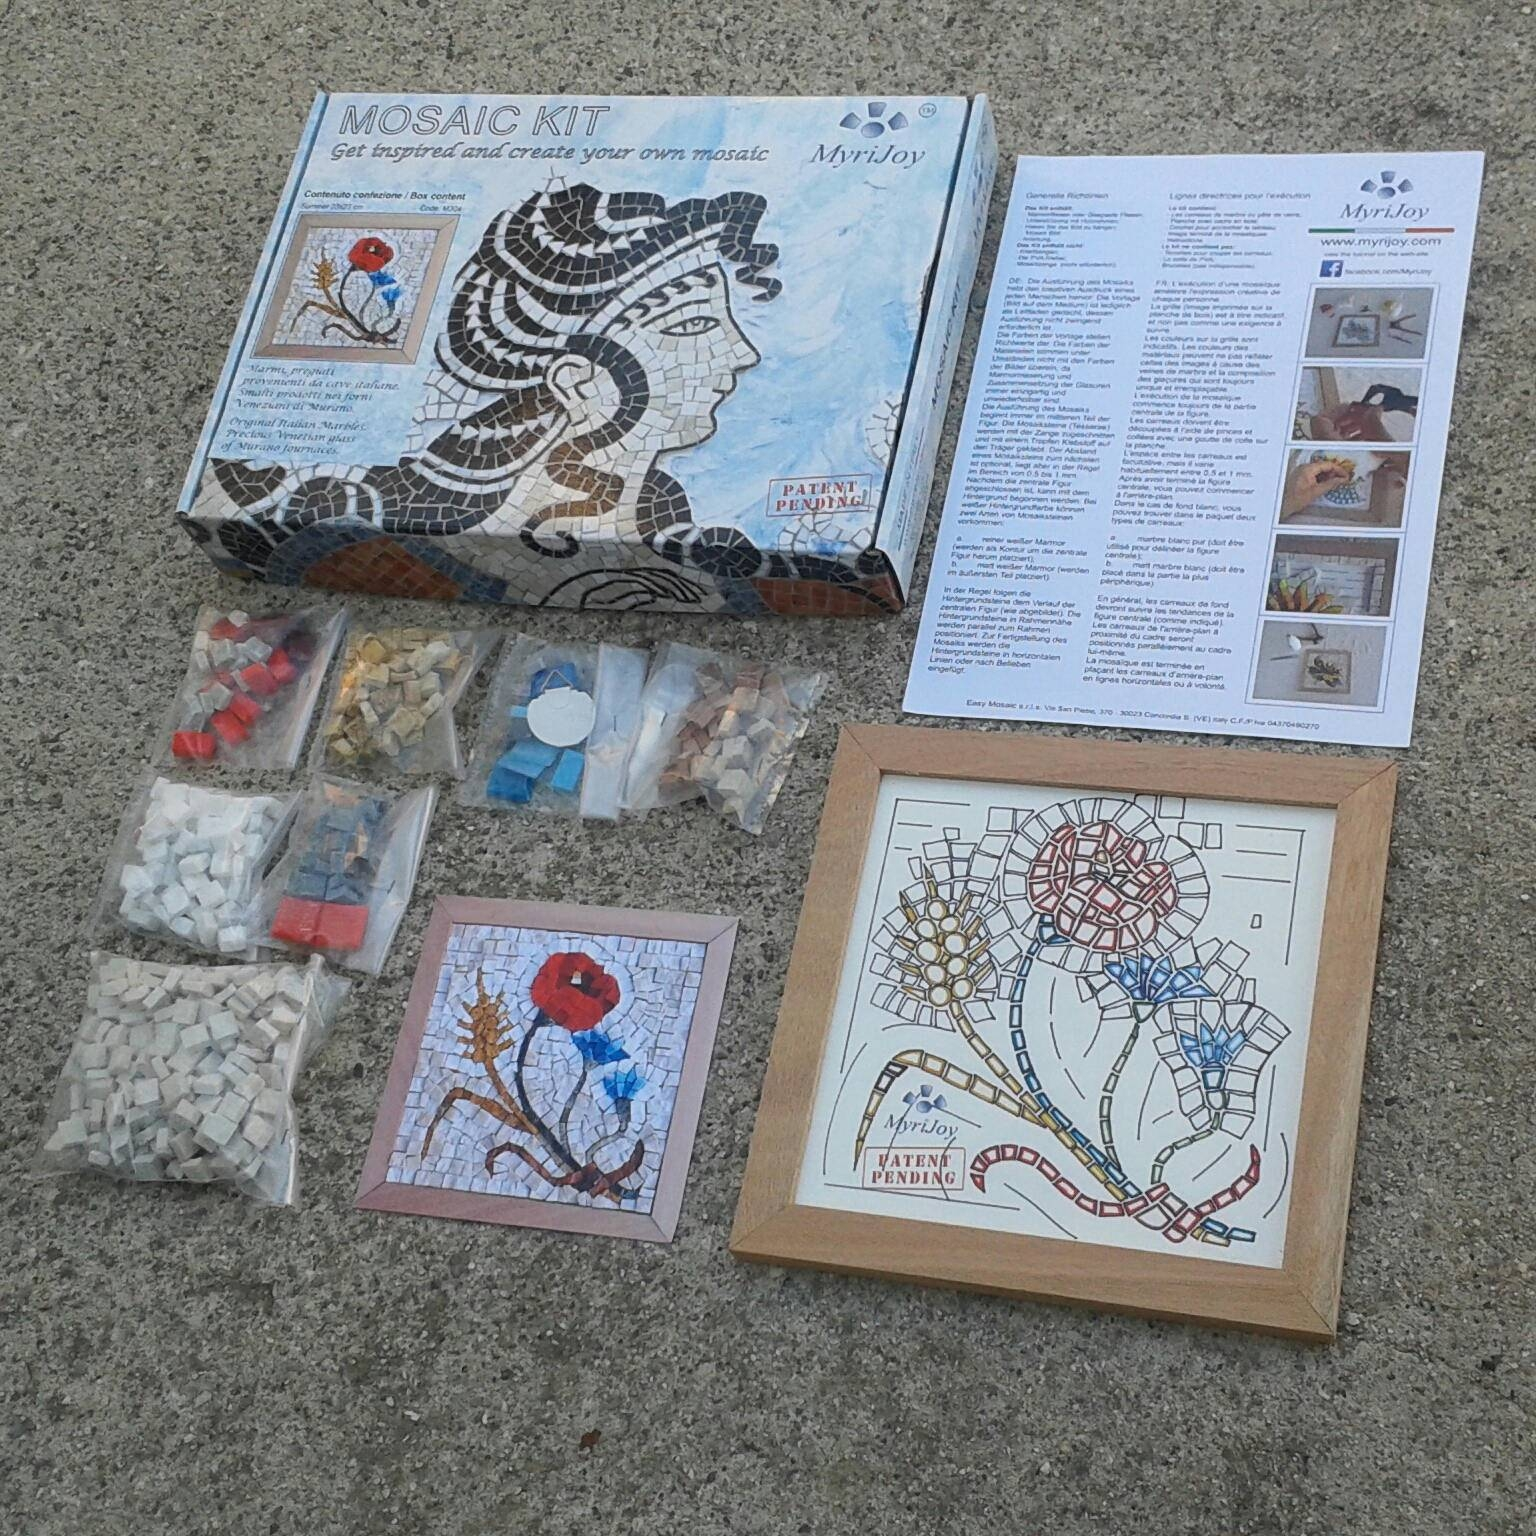 Diy Mosaic Craft Kit For Adults: Four Seasons Summer – Mosaic Tile Throughout Recent Mosaic Art Kits For Adults (View 17 of 20)